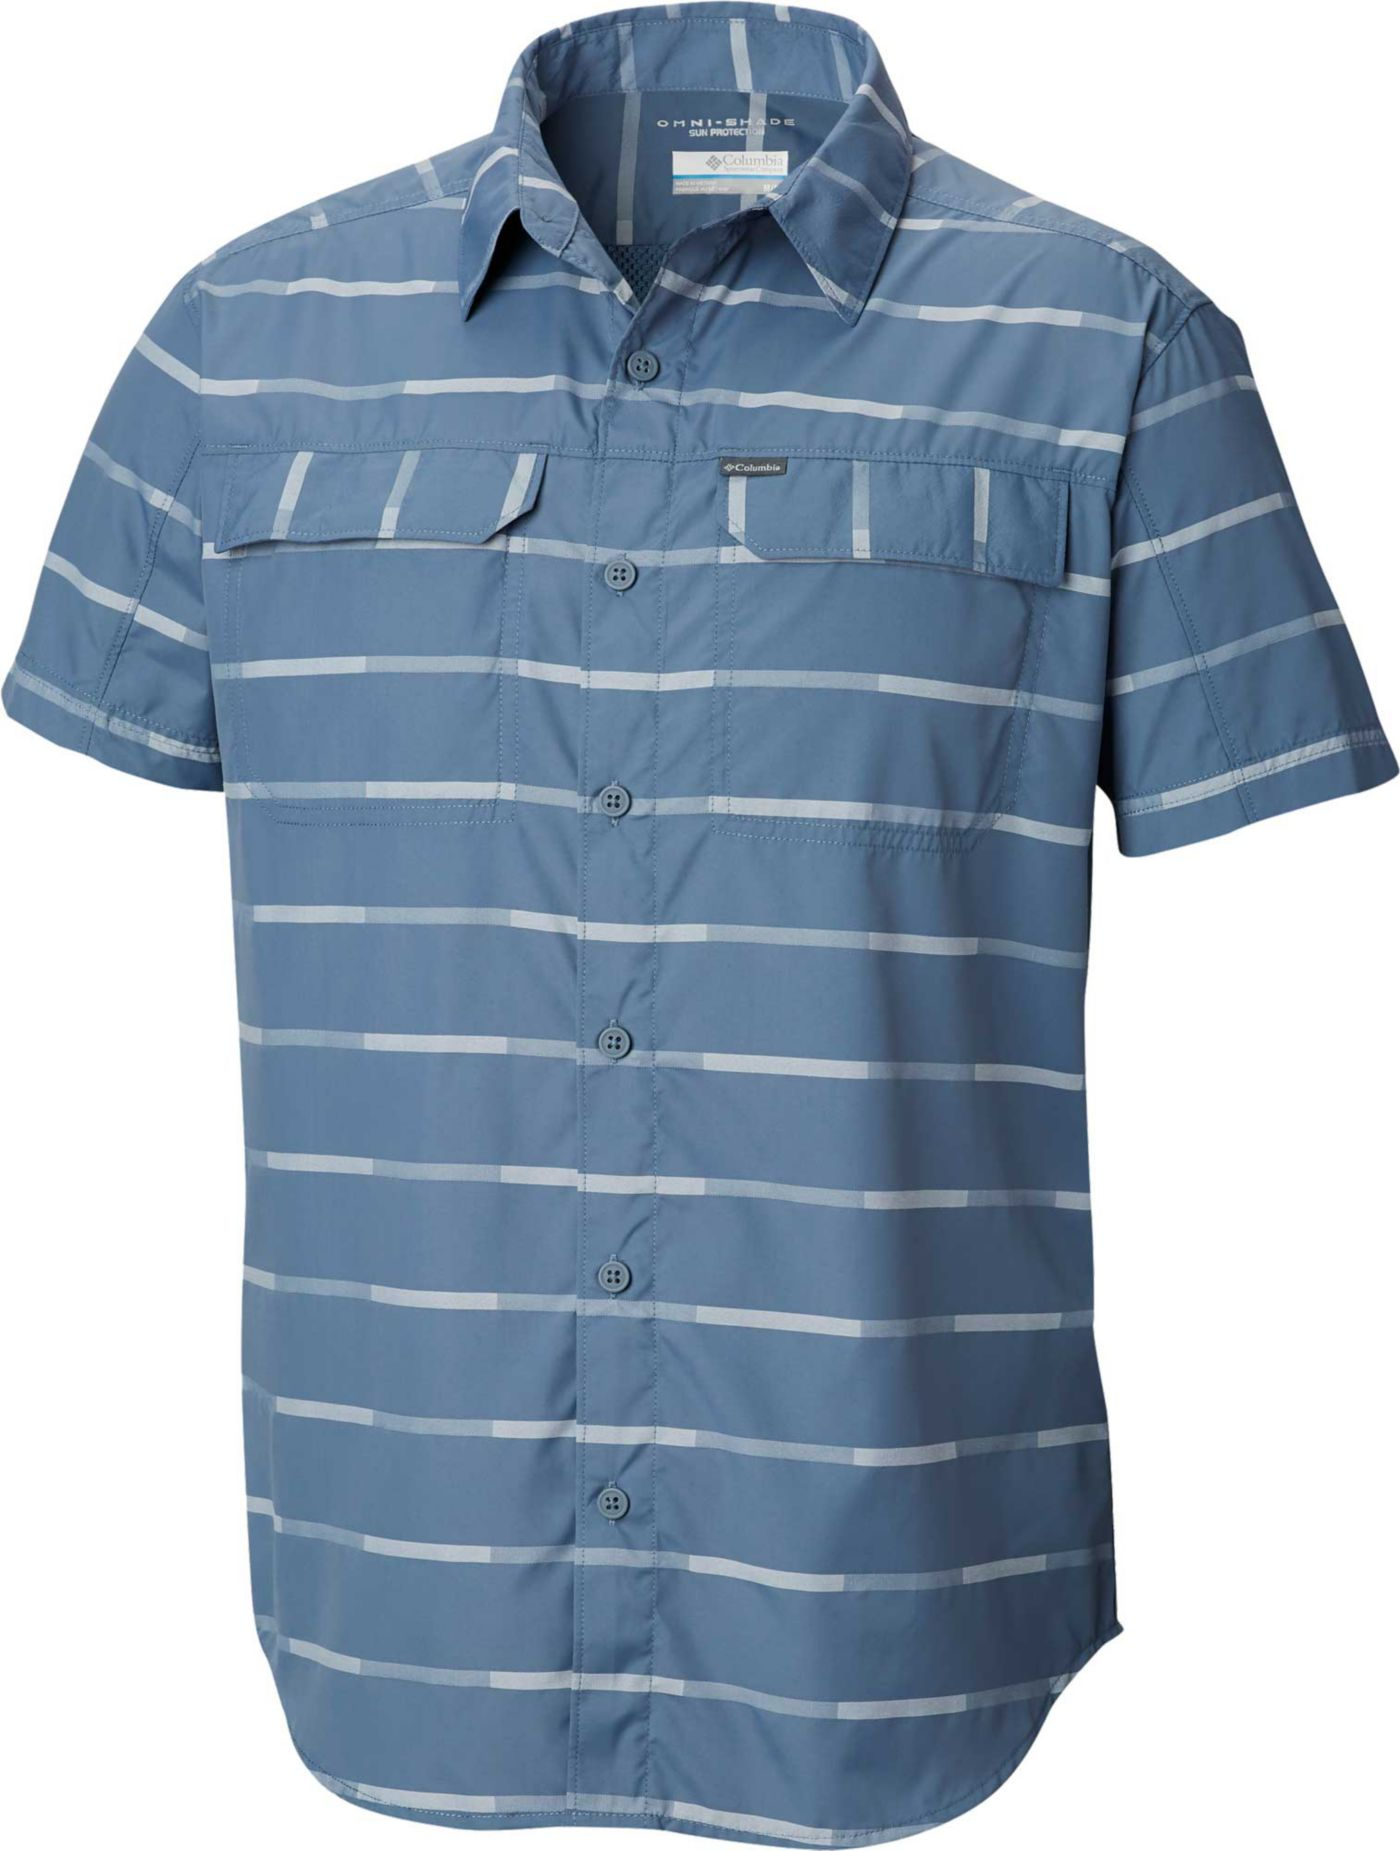 Columbia Men's Silver Ridge 2.0 Plaid Short Sleeve Shirt